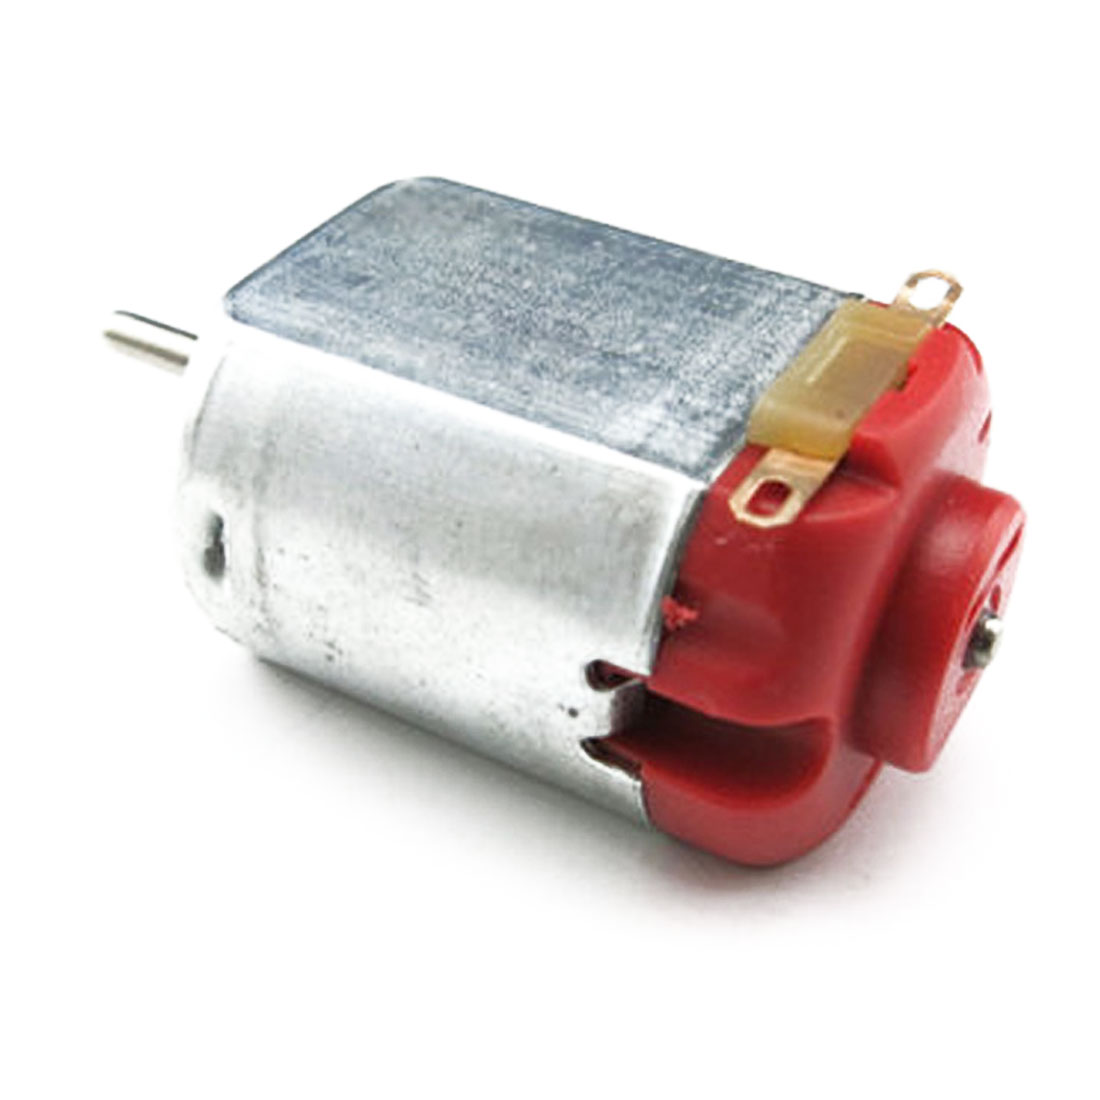 New Brand DIY Toy Motor Four-wheel Drive 3V DC Motor Mini 130 Motor 16500 RPM For Scientific Experiment Smart Car Motor